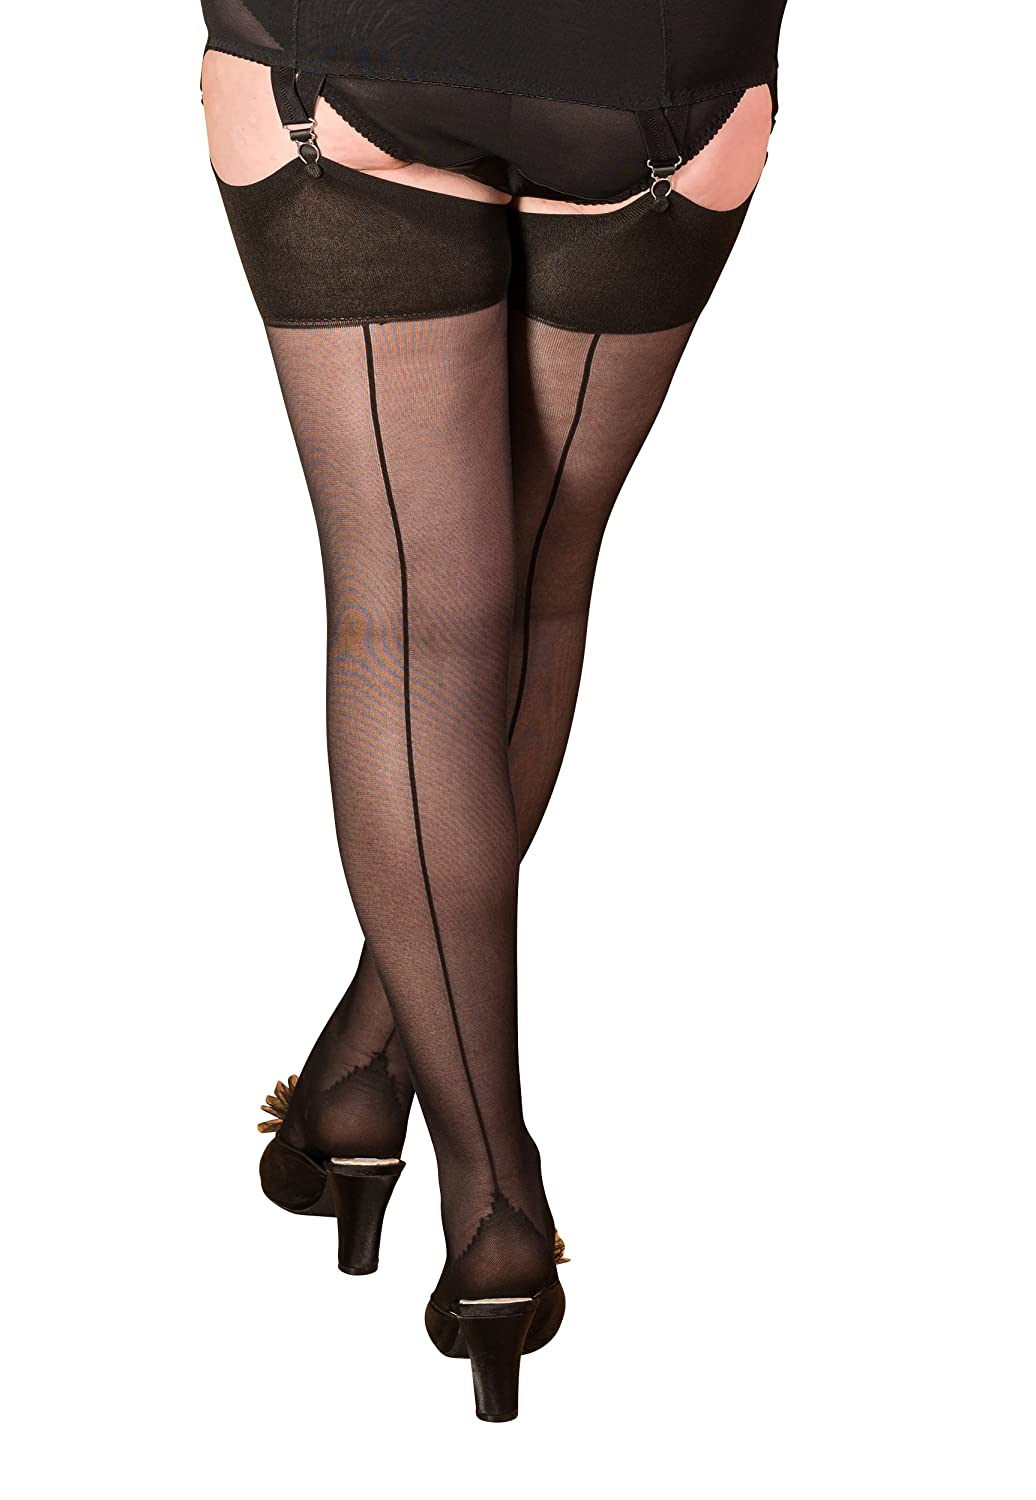 bef361642 What Katie Did Seamed Stockings 40 Denier Black (Small Med 5ft 1 To 5ft 7  (110-145lbs)